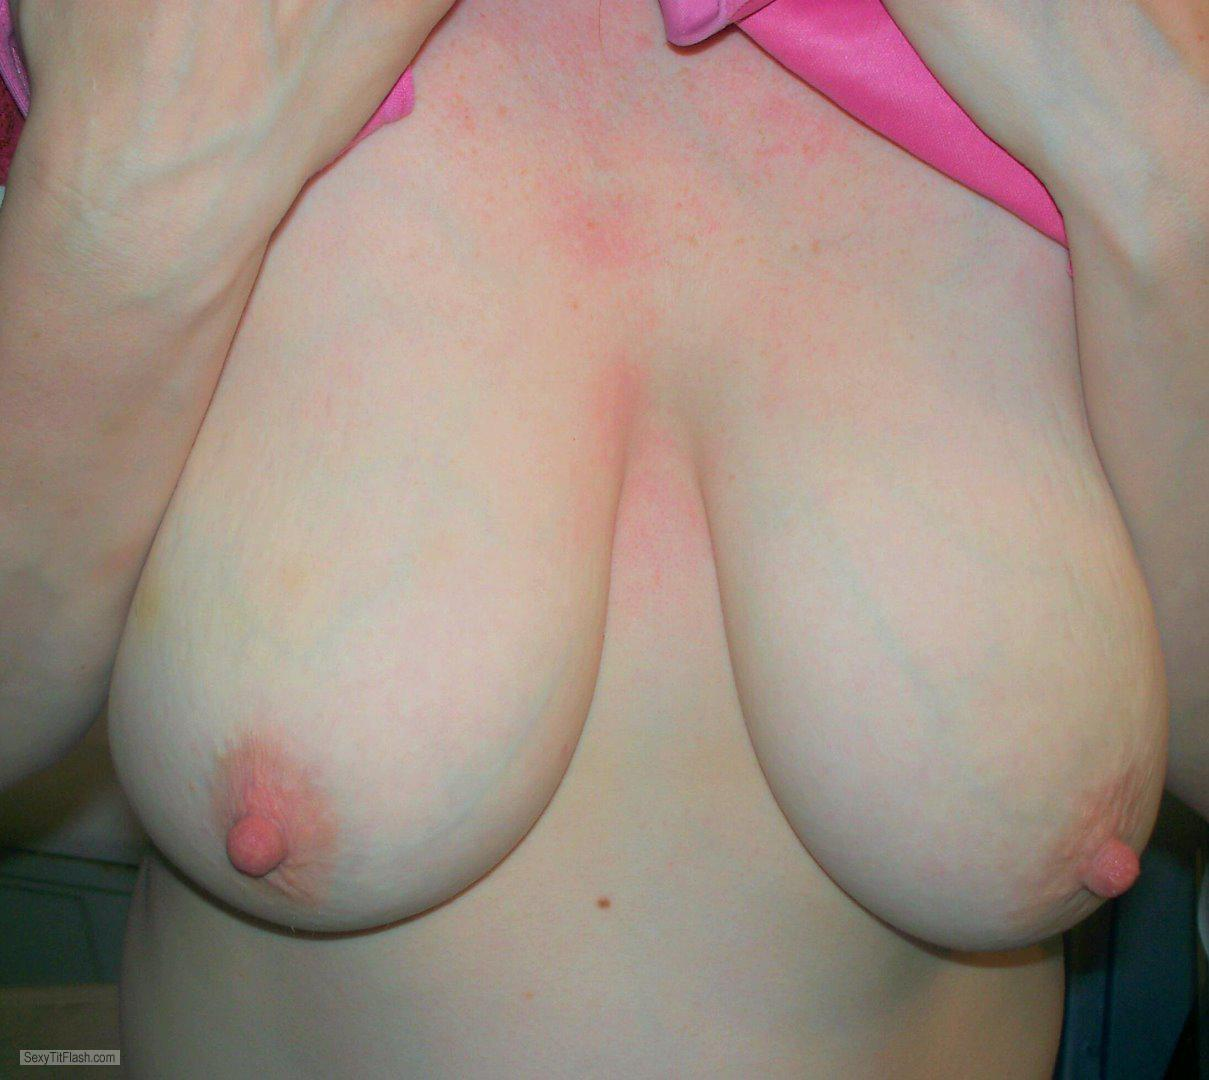 Tit Flash: My Extremely Big Tits - Hot Wife from United States